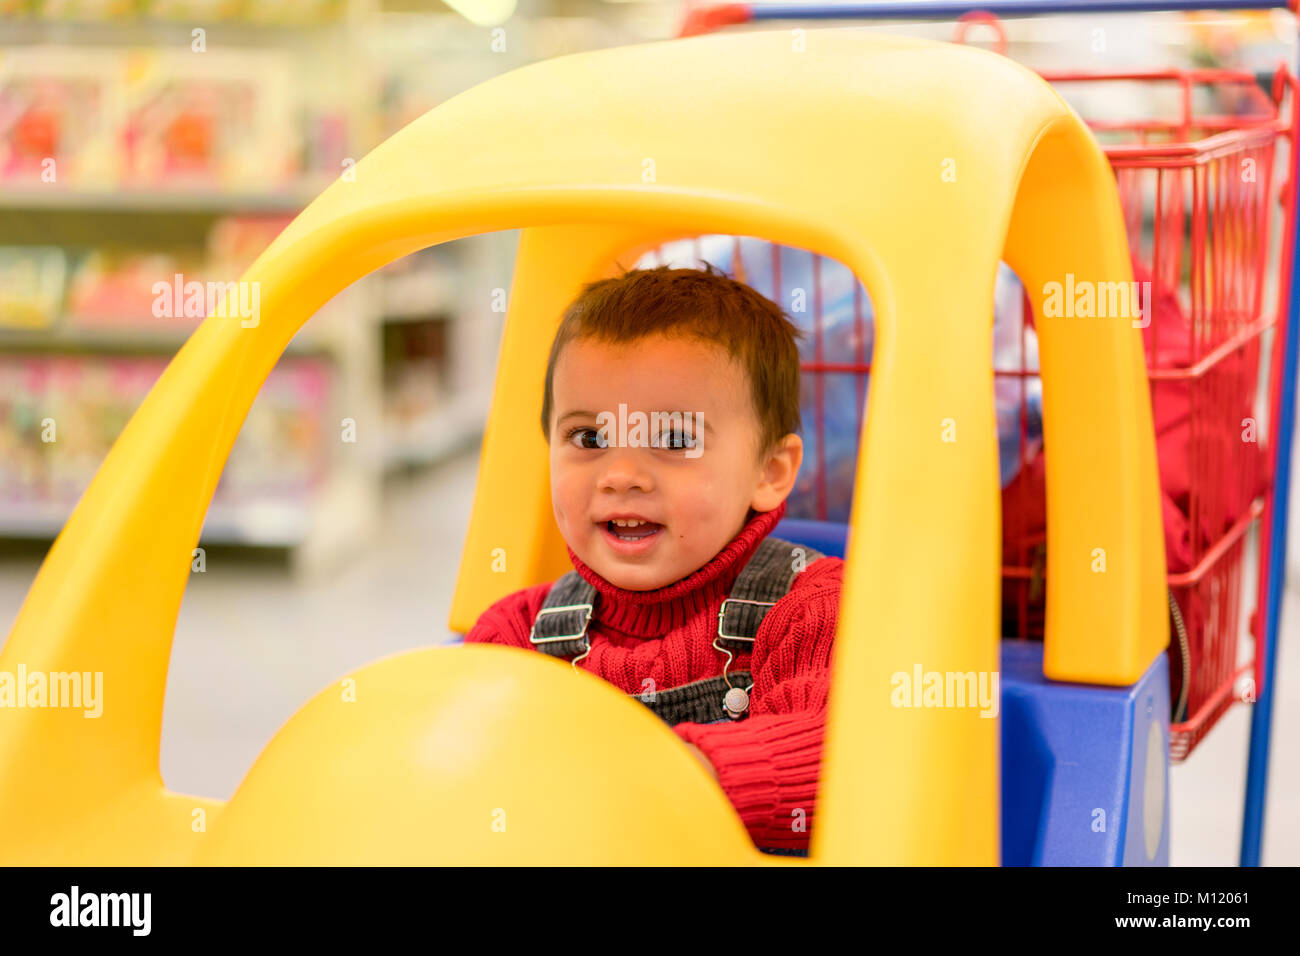 little cheerful boy in a trolley in a shopping center - Stock Image